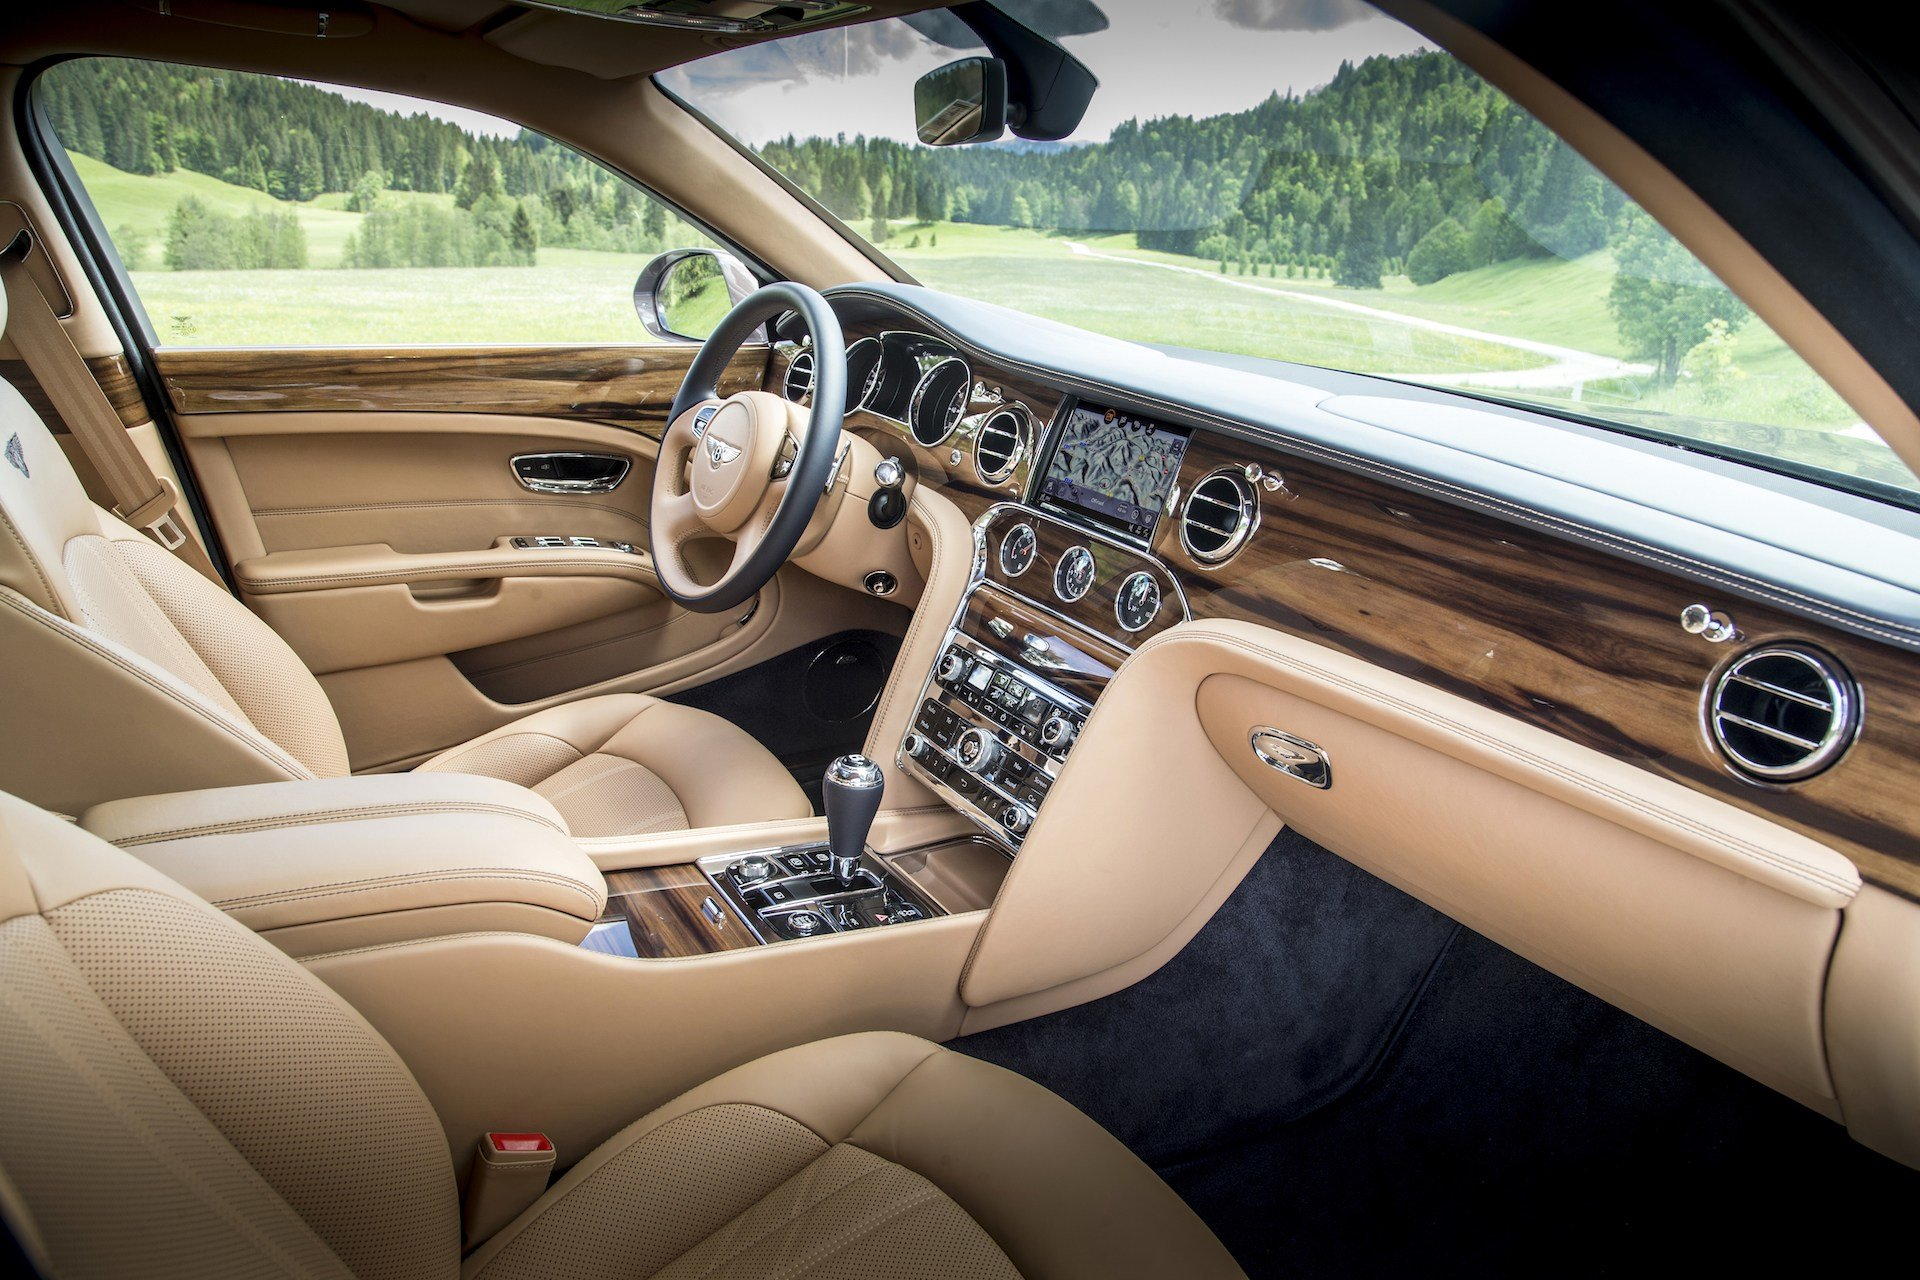 Latest 8 Great Interior Features Of The 2017 Bentley Mulsanne Free Download